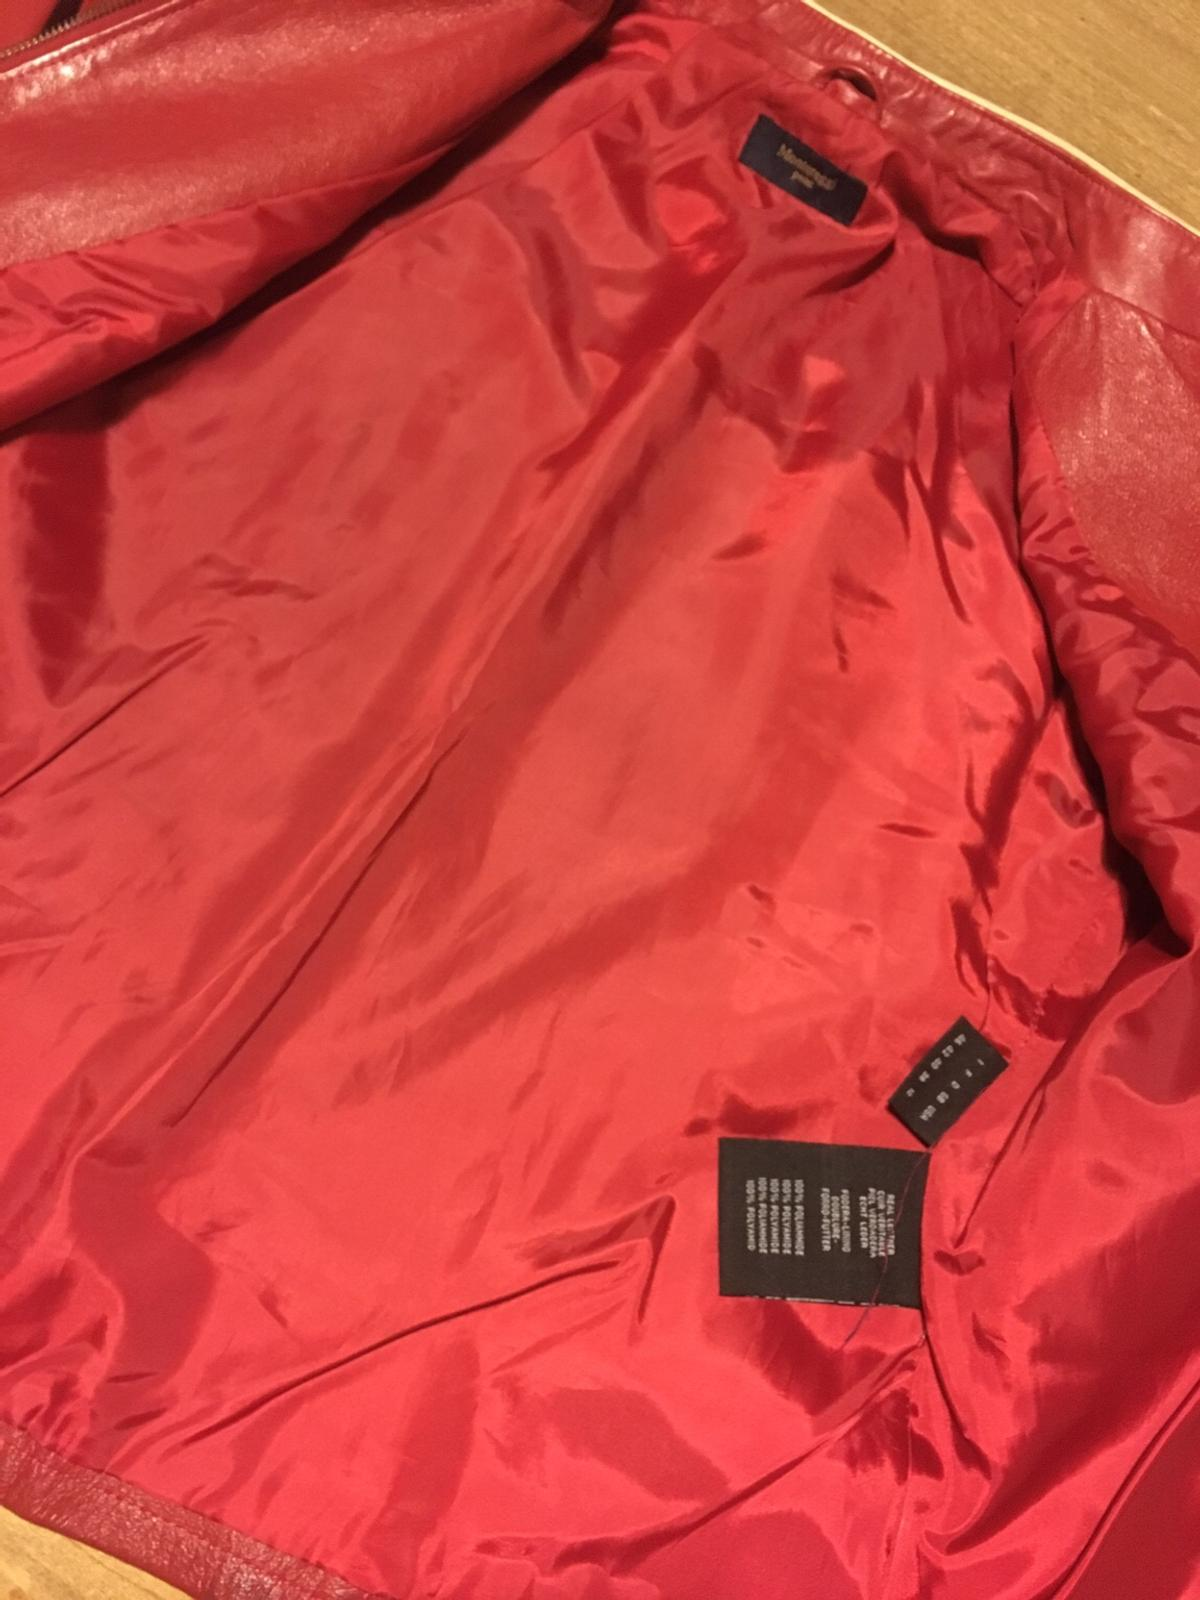 sale retailer 2d044 ef8ae Giacca di pelle rossa in 50121 Firenze for €50.00 for sale ...